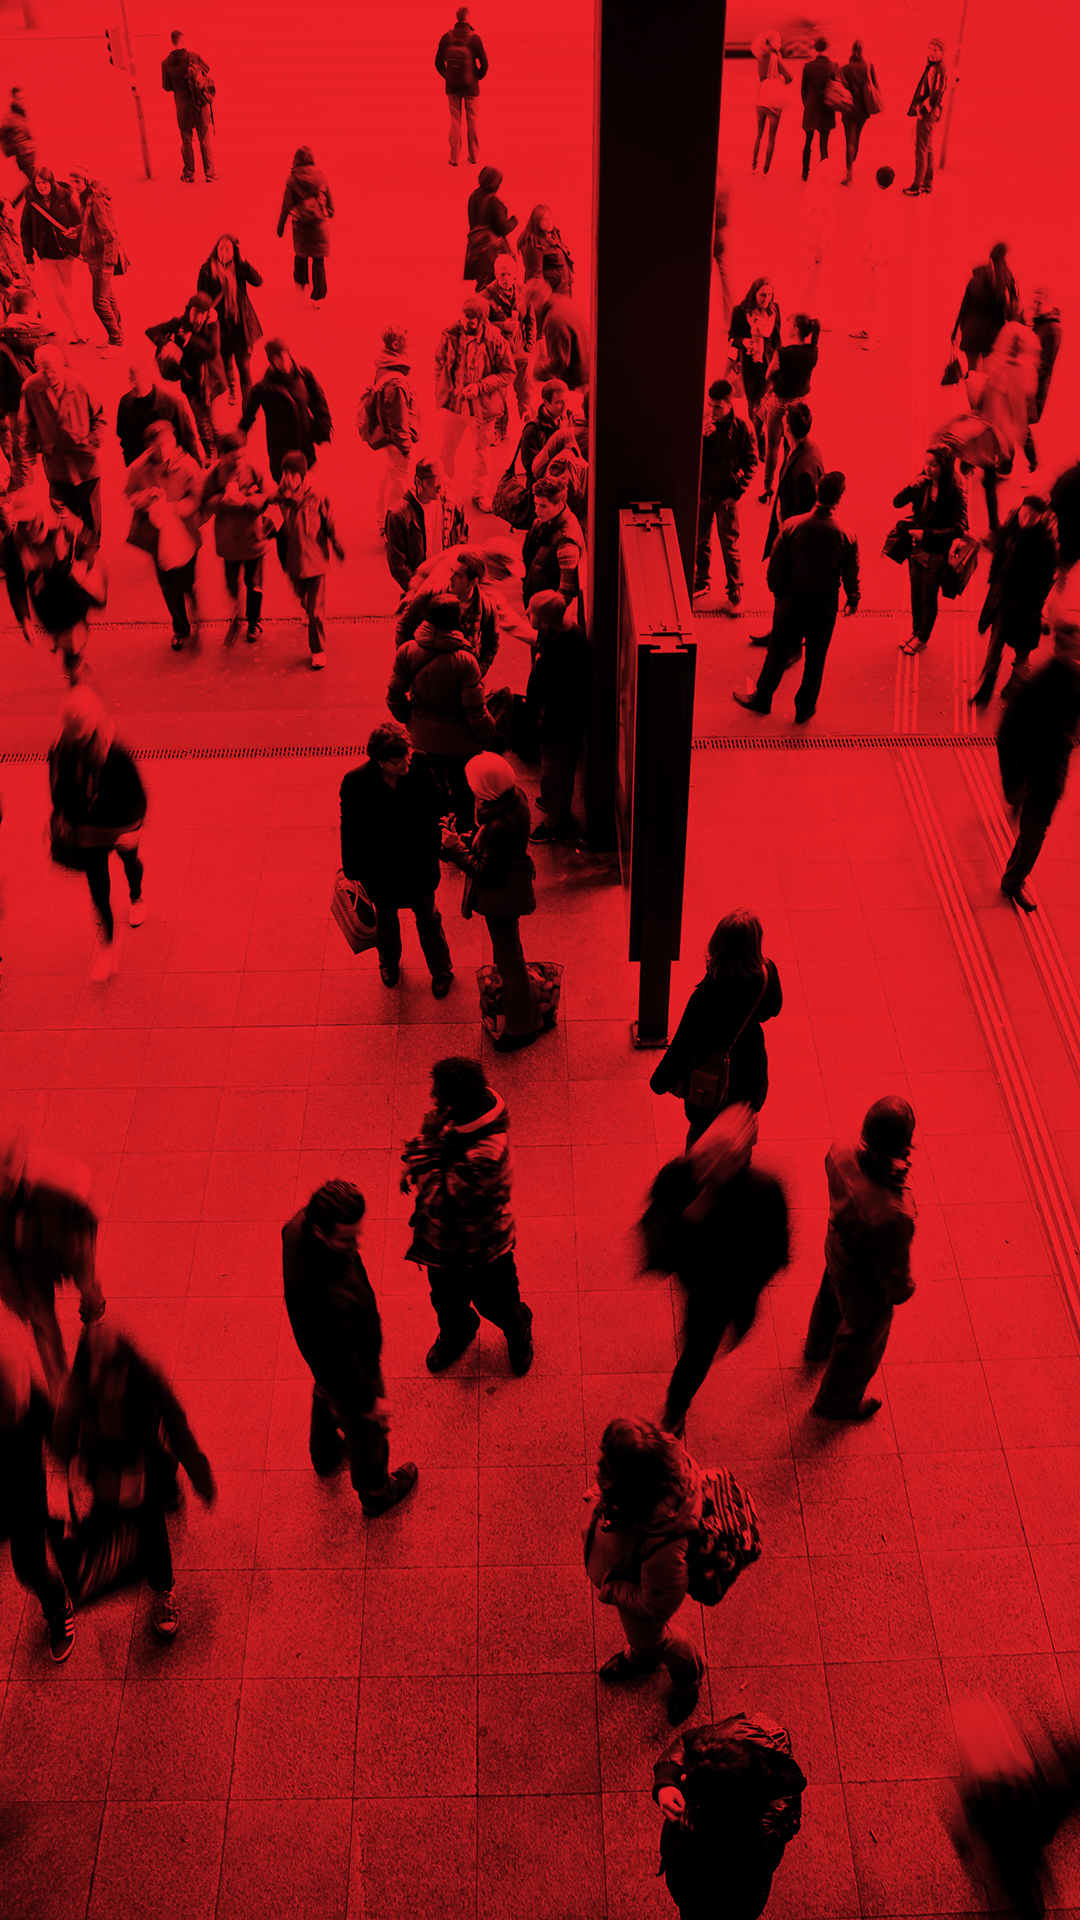 home-page-public-spaces-red